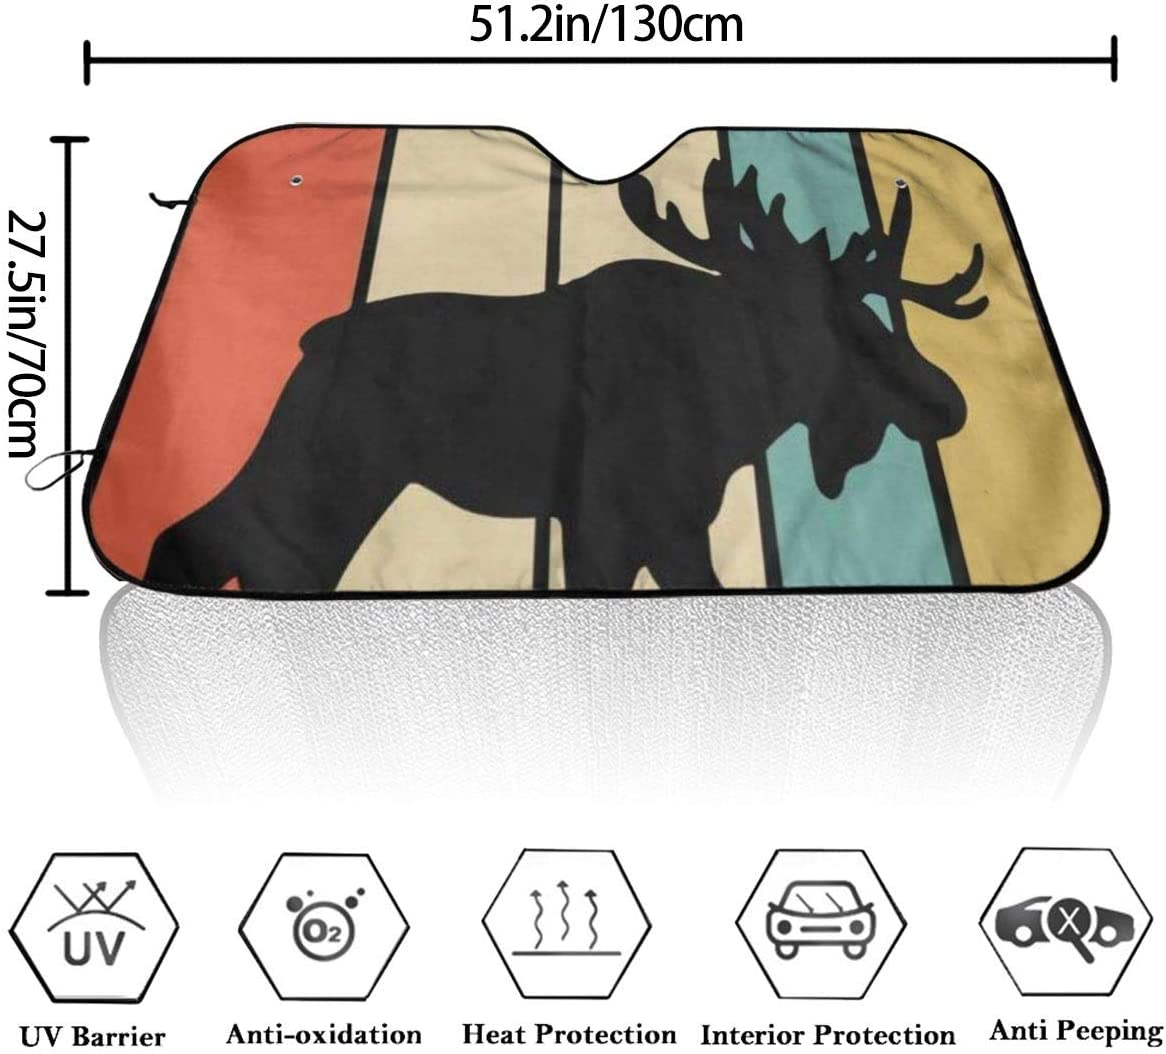 DGbanma Windshield Sun Shade,Foldable Car Sun Shade for Windshield Keep Your Vehicle Cool Vintage Style Moose Silhouette